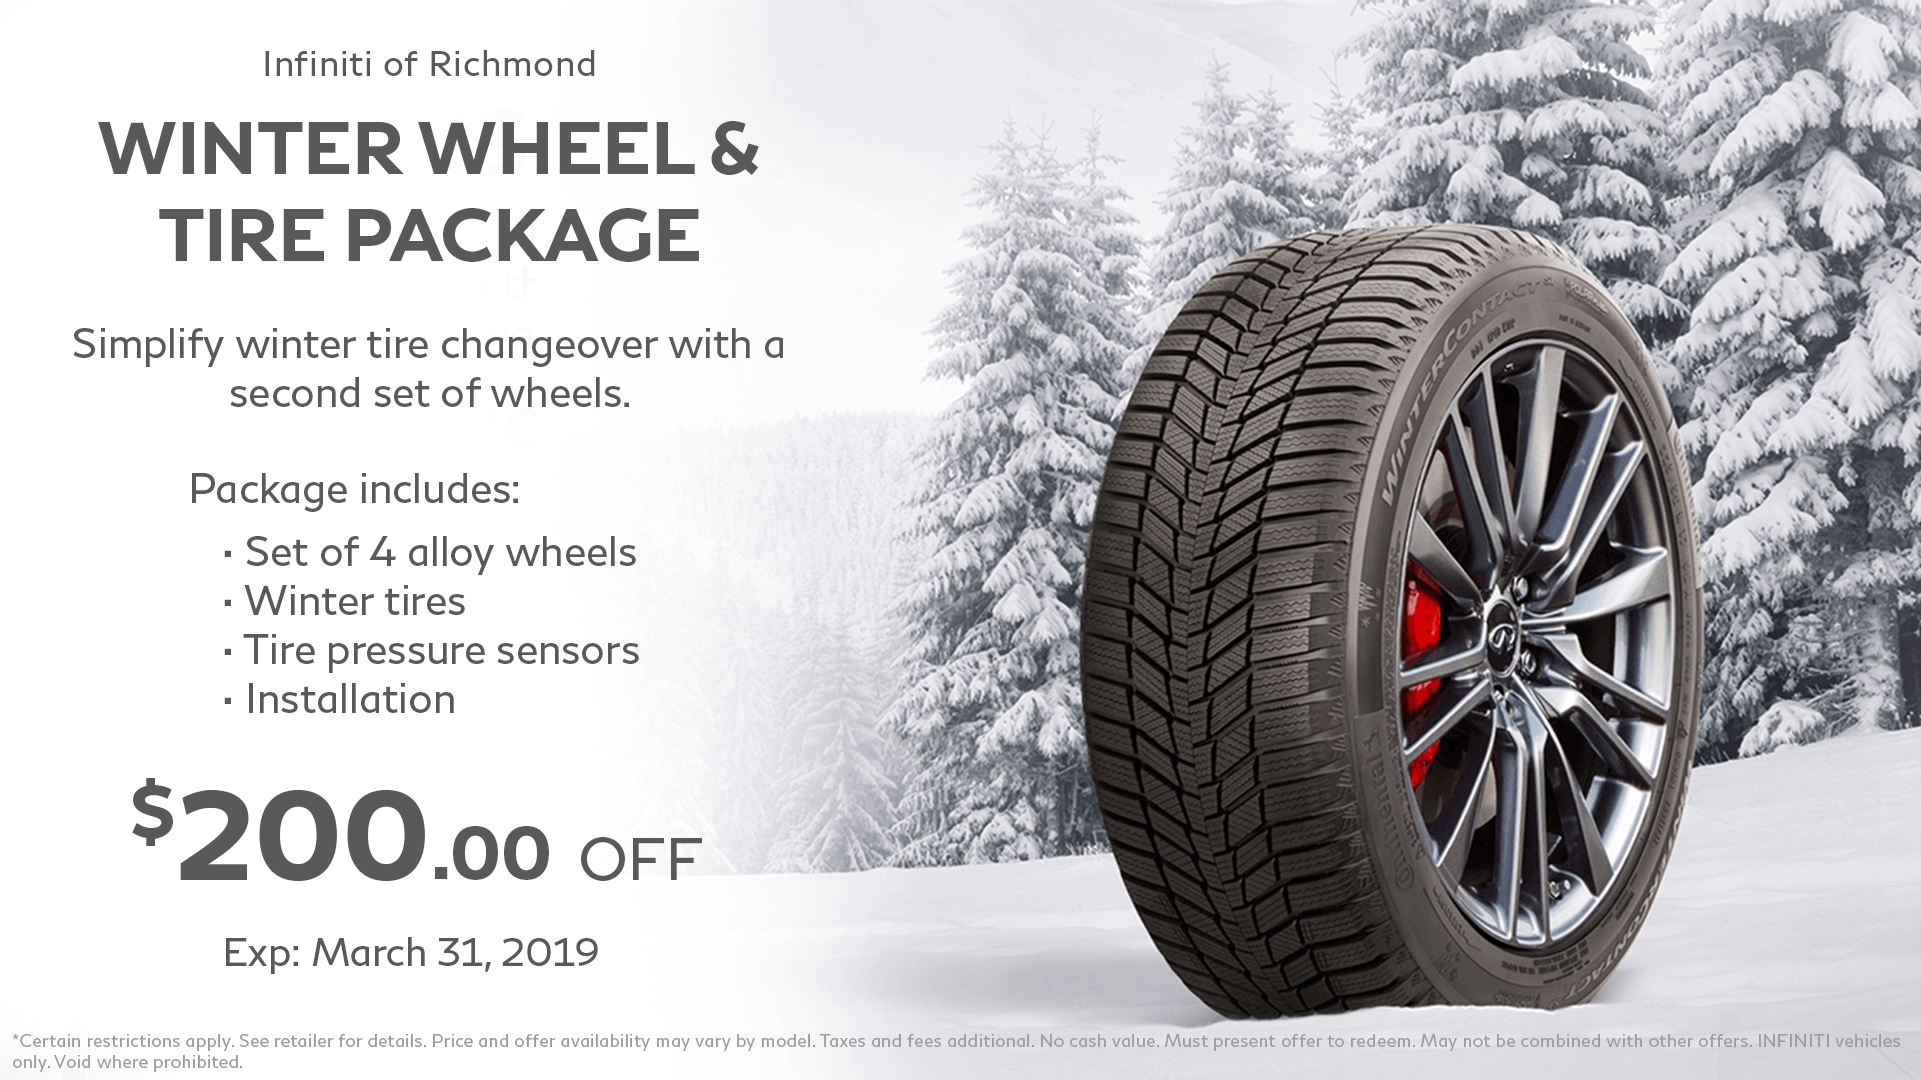 tires to wheel/tire package